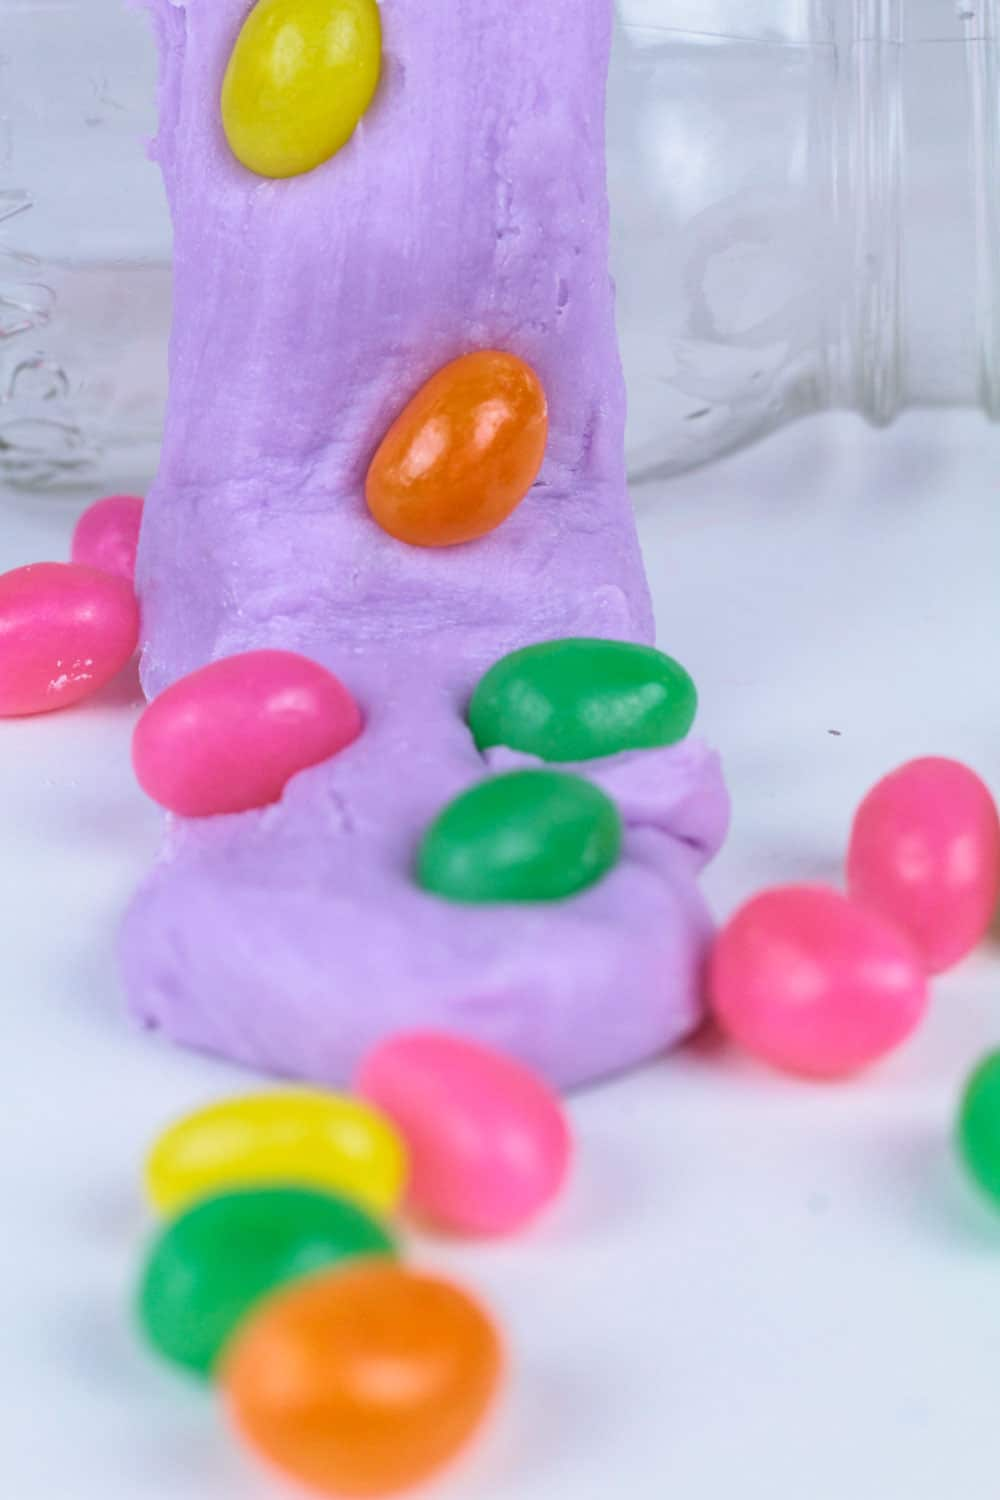 Do you love slime? Want to know how to make edible slime? This edible jellybean slime recipe is the perfect edible slime recipe for Easter! You don't have to be a slime expert to make this tasty borax-free slime for Easter! The perfect Easter slime recipe!